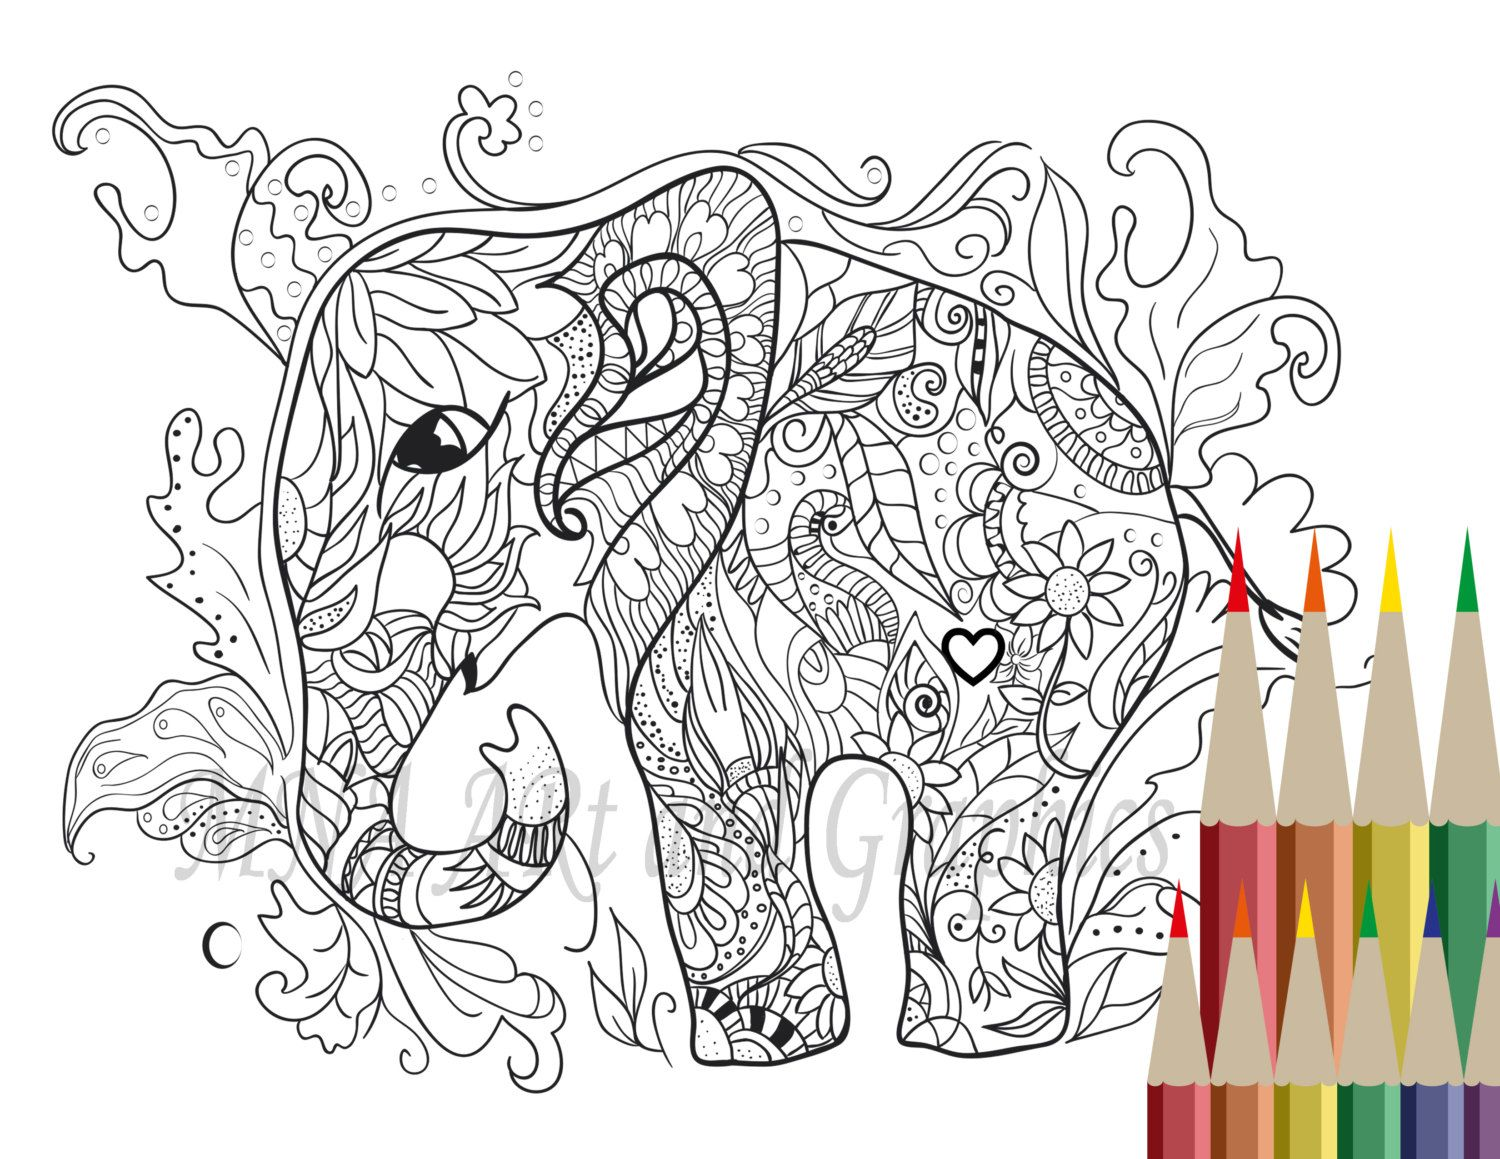 Elephant Coloring Page - Adult Coloring Page - Elephant Coloring ...